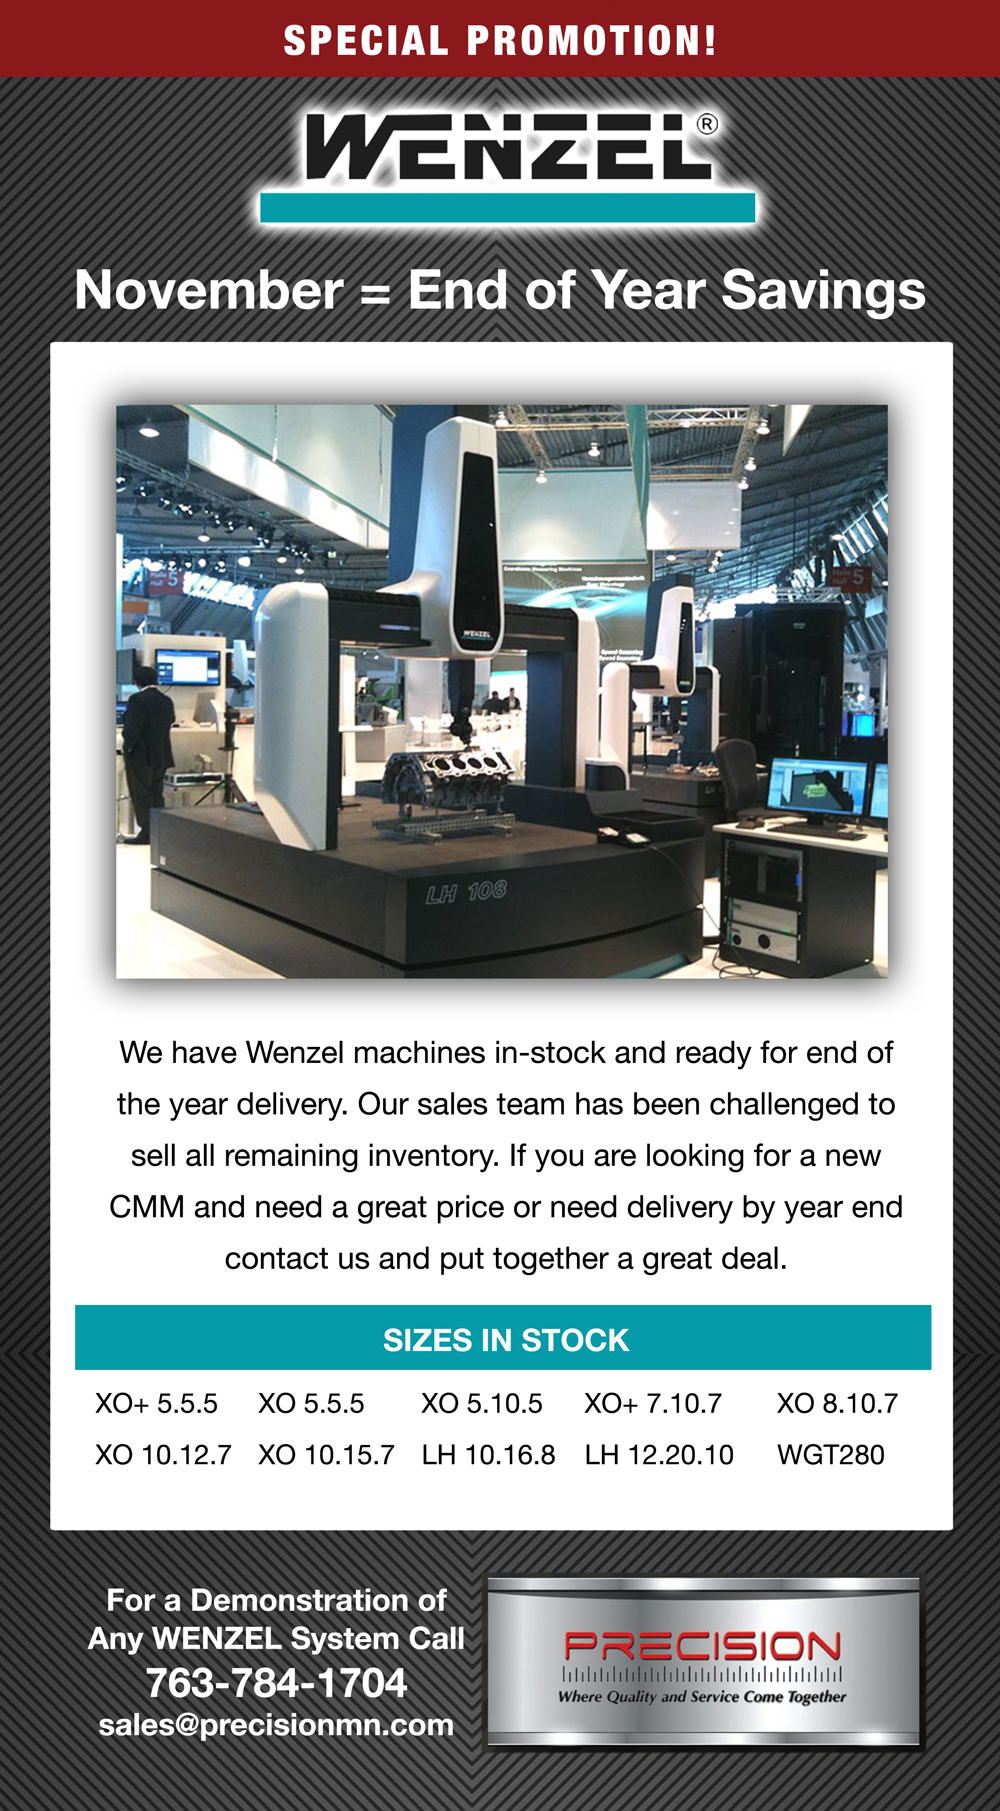 Savings on Wenzel CMM's